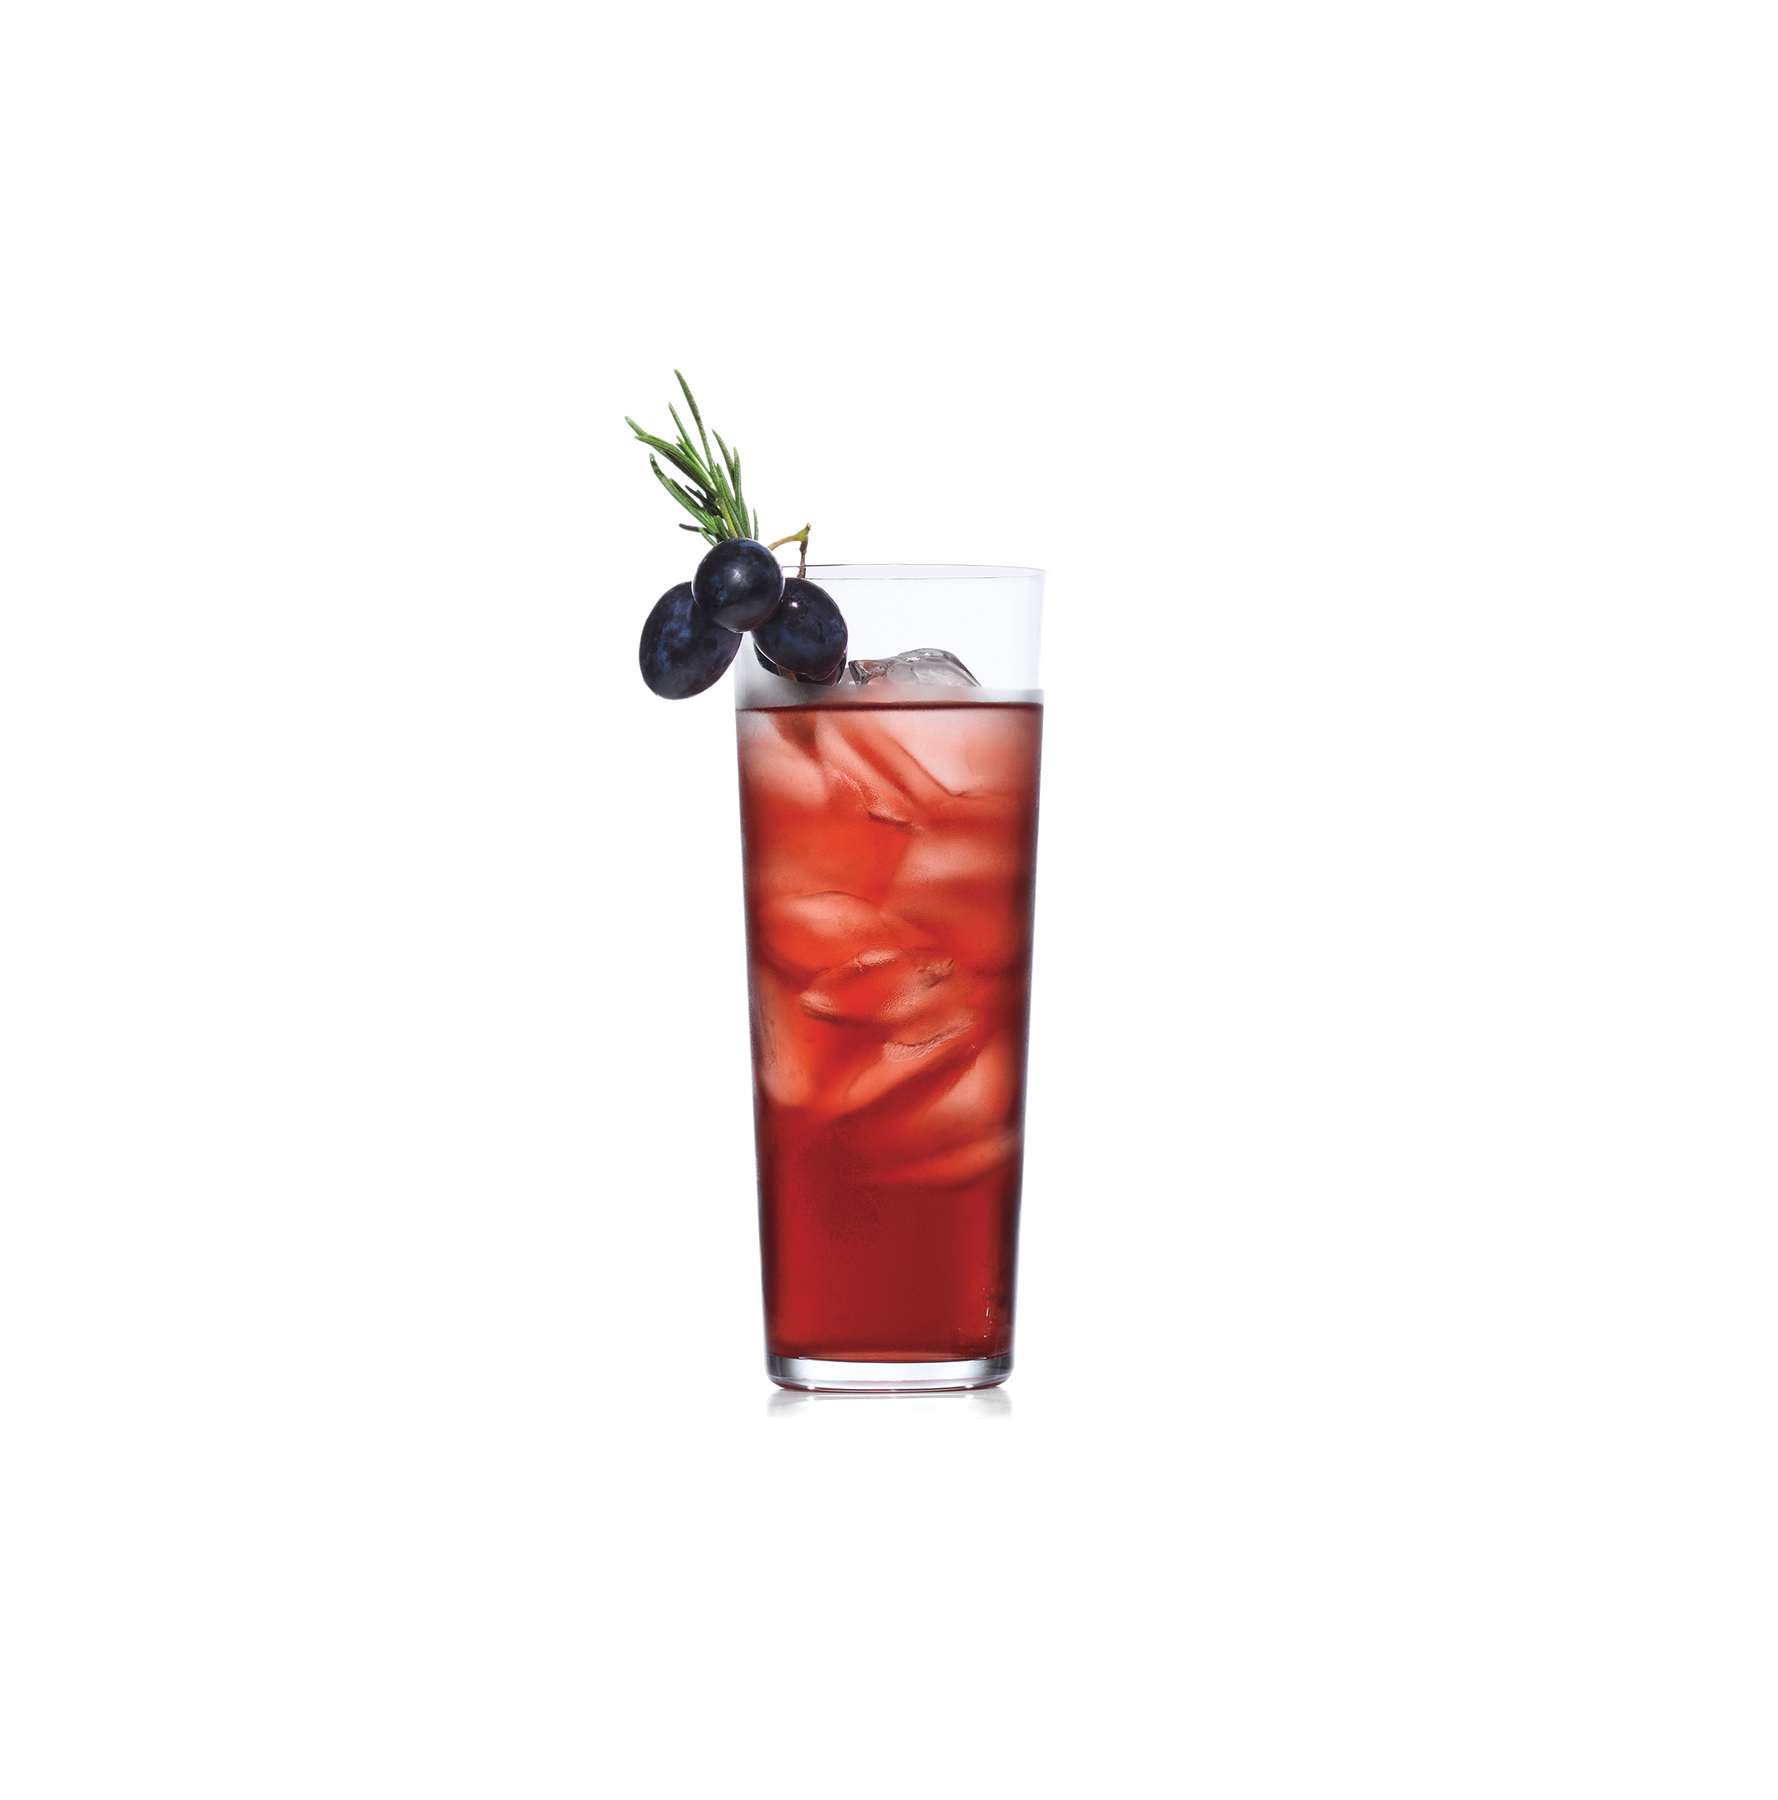 rosemary-grape-gin-cocktails